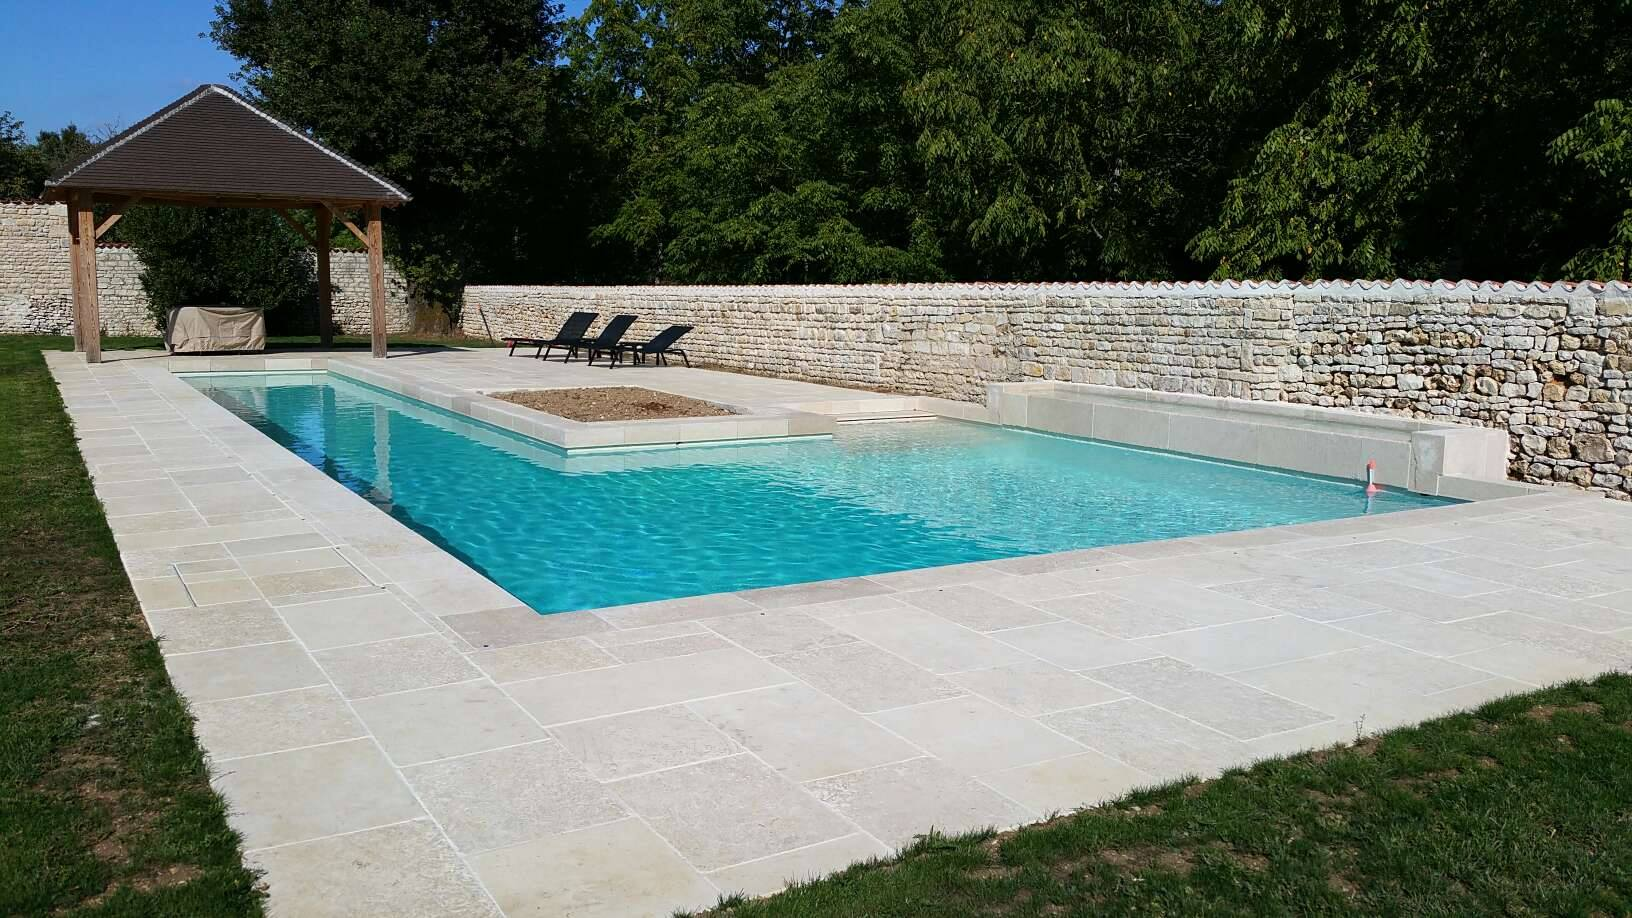 construction de piscine d bordement en charente 16 par